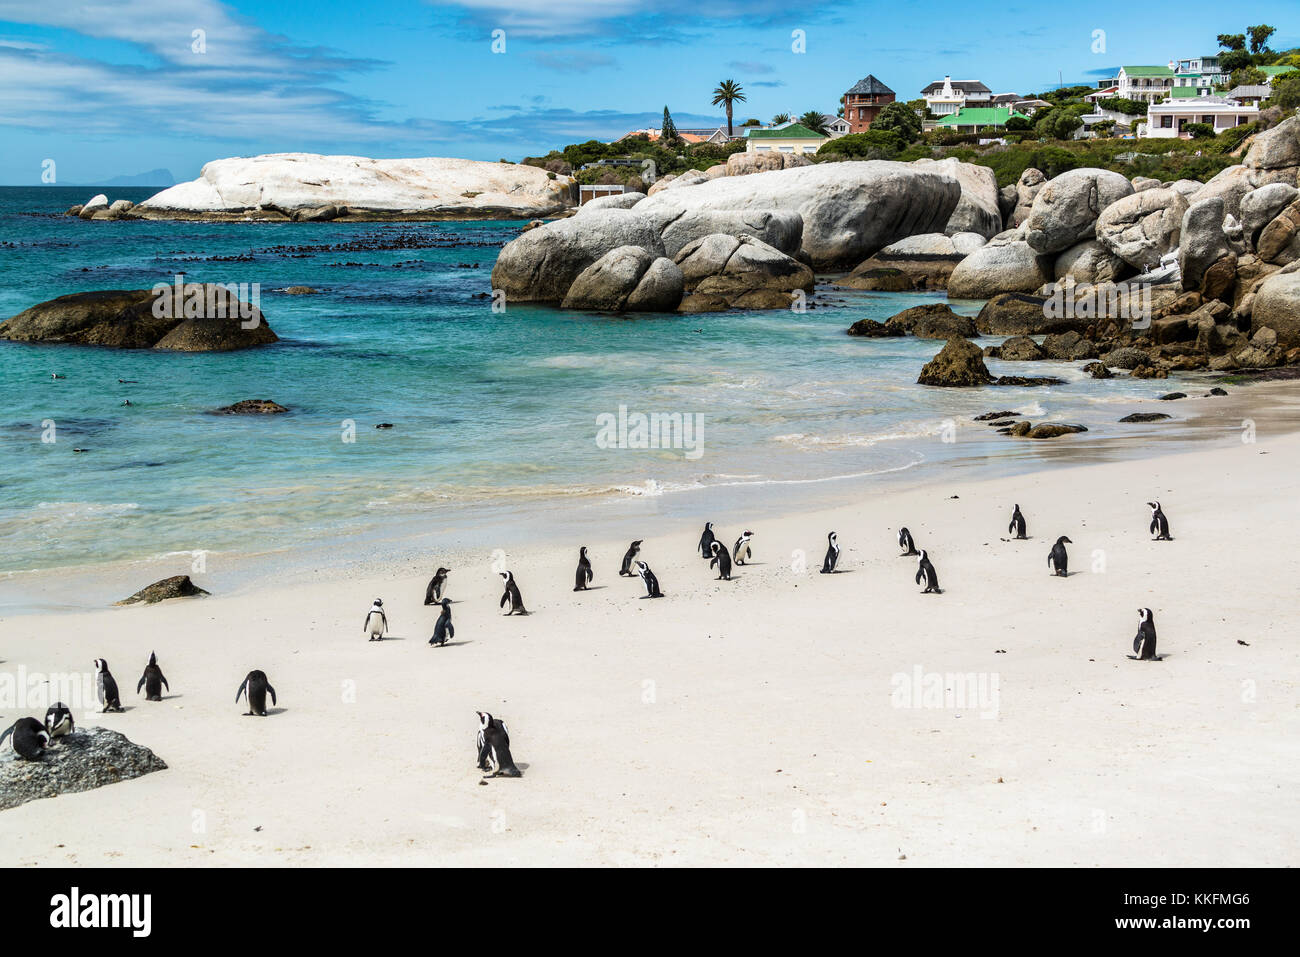 Colony of spectacle penguins, Boulders Beach, Simon's Town, South Africa - Stock Image